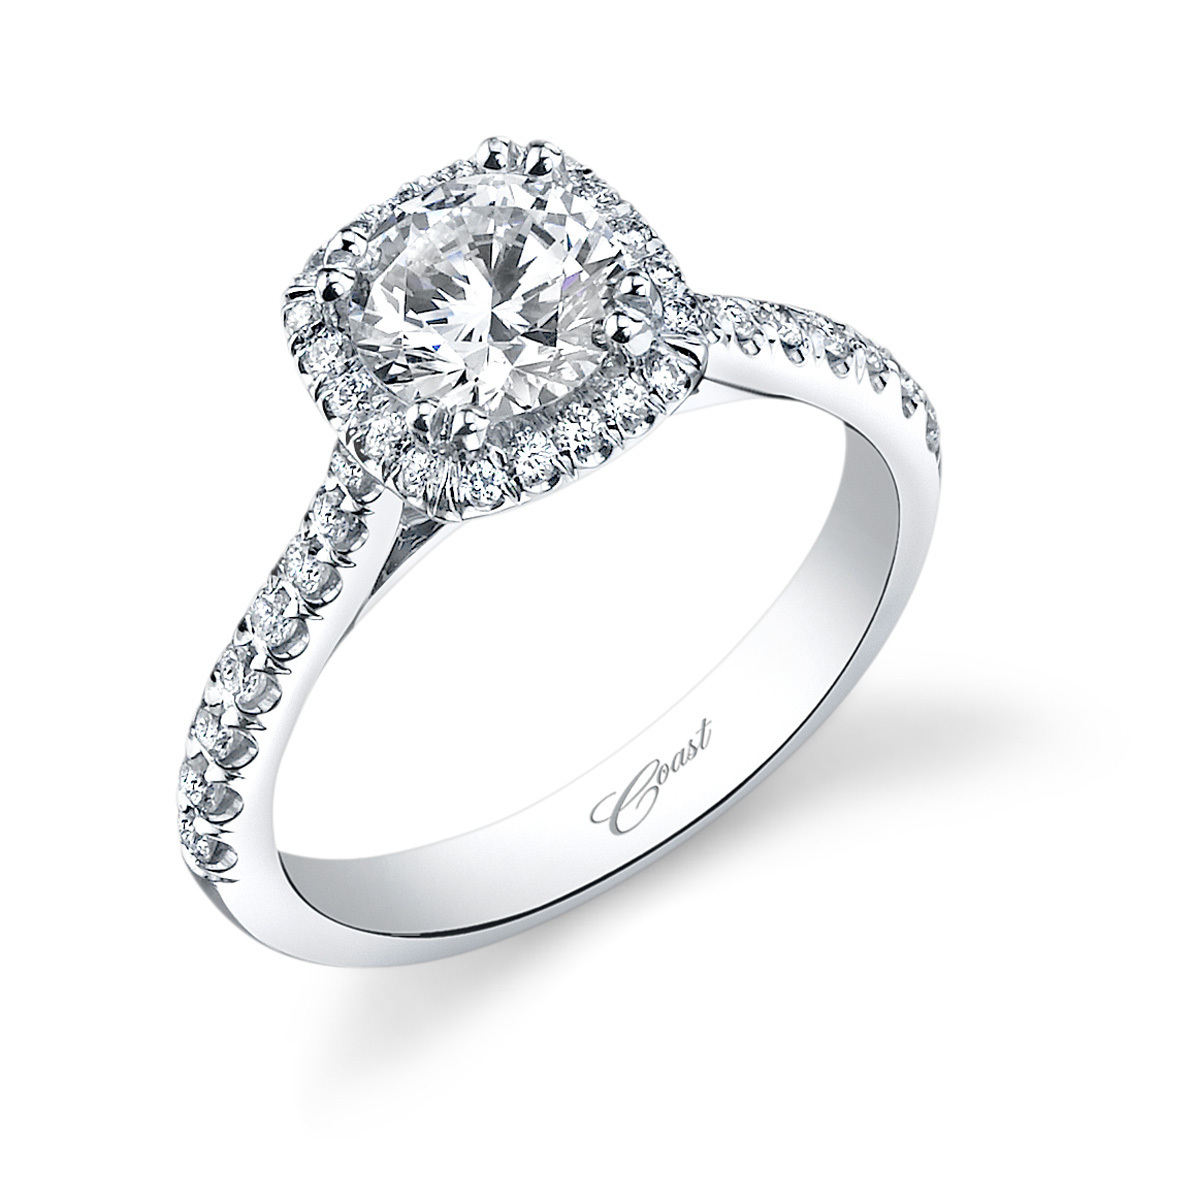 Charisma Engagement Ring - Beautiful Halo